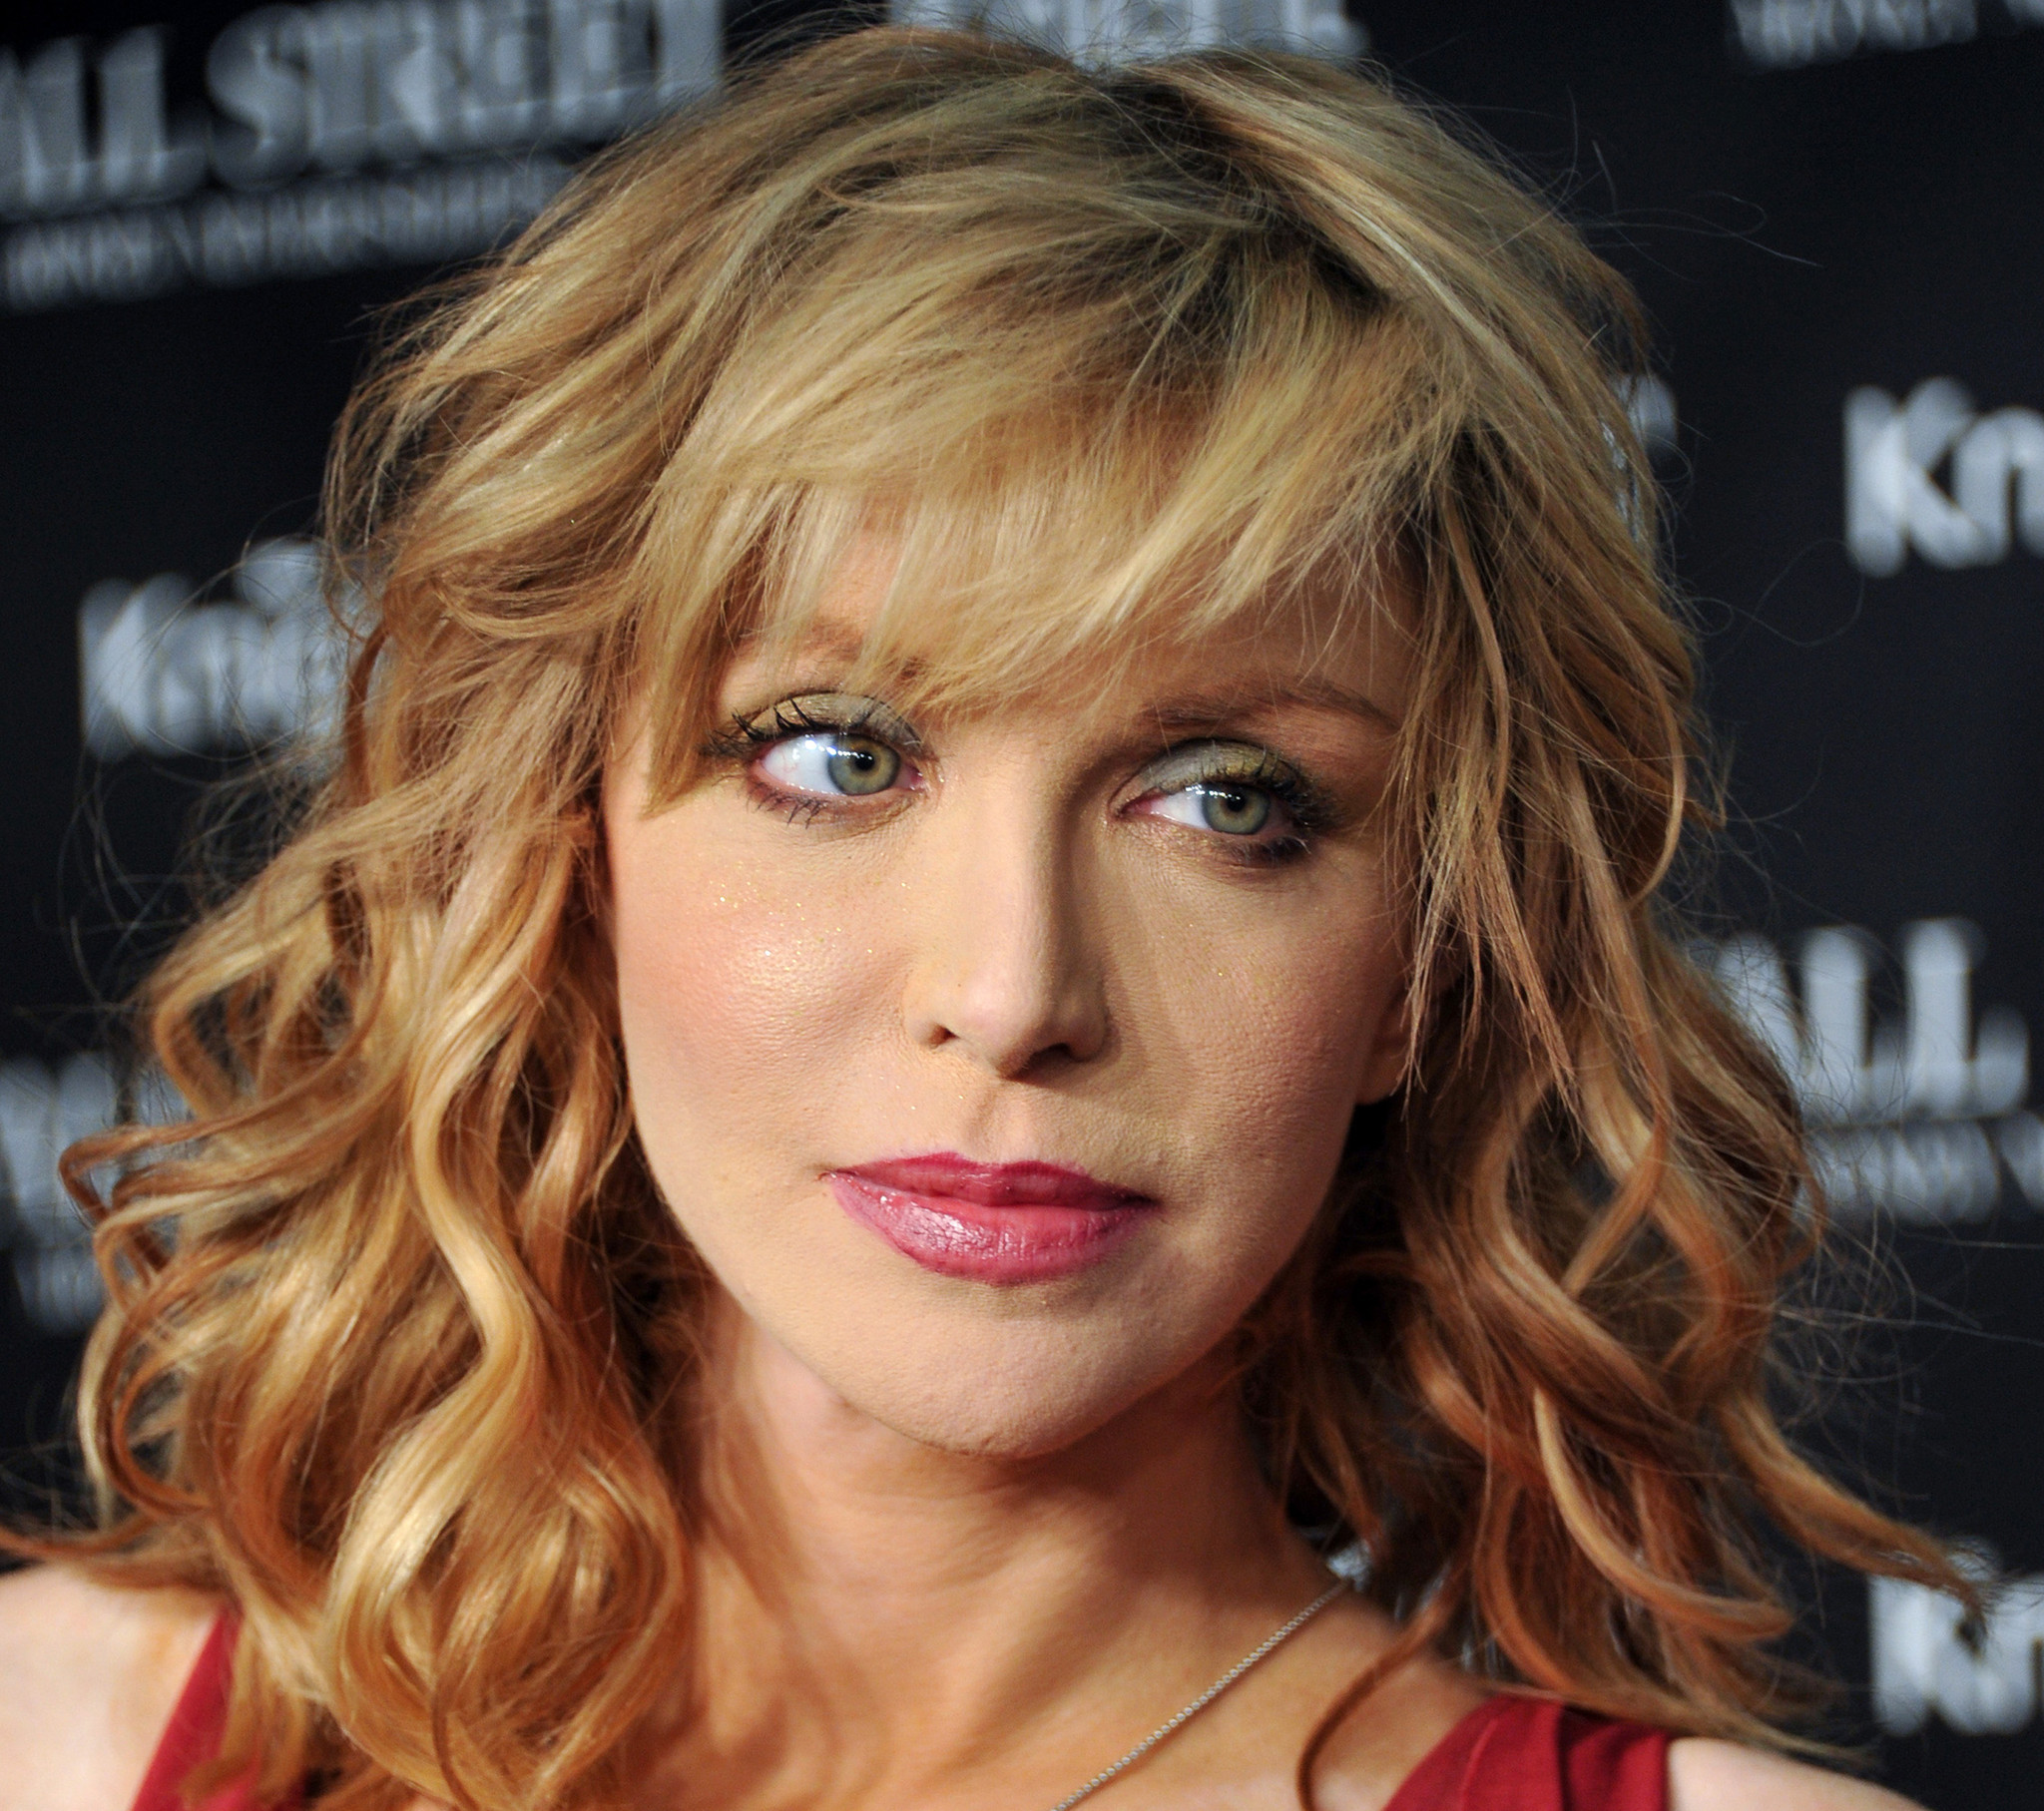 courtney love america's sweetheart